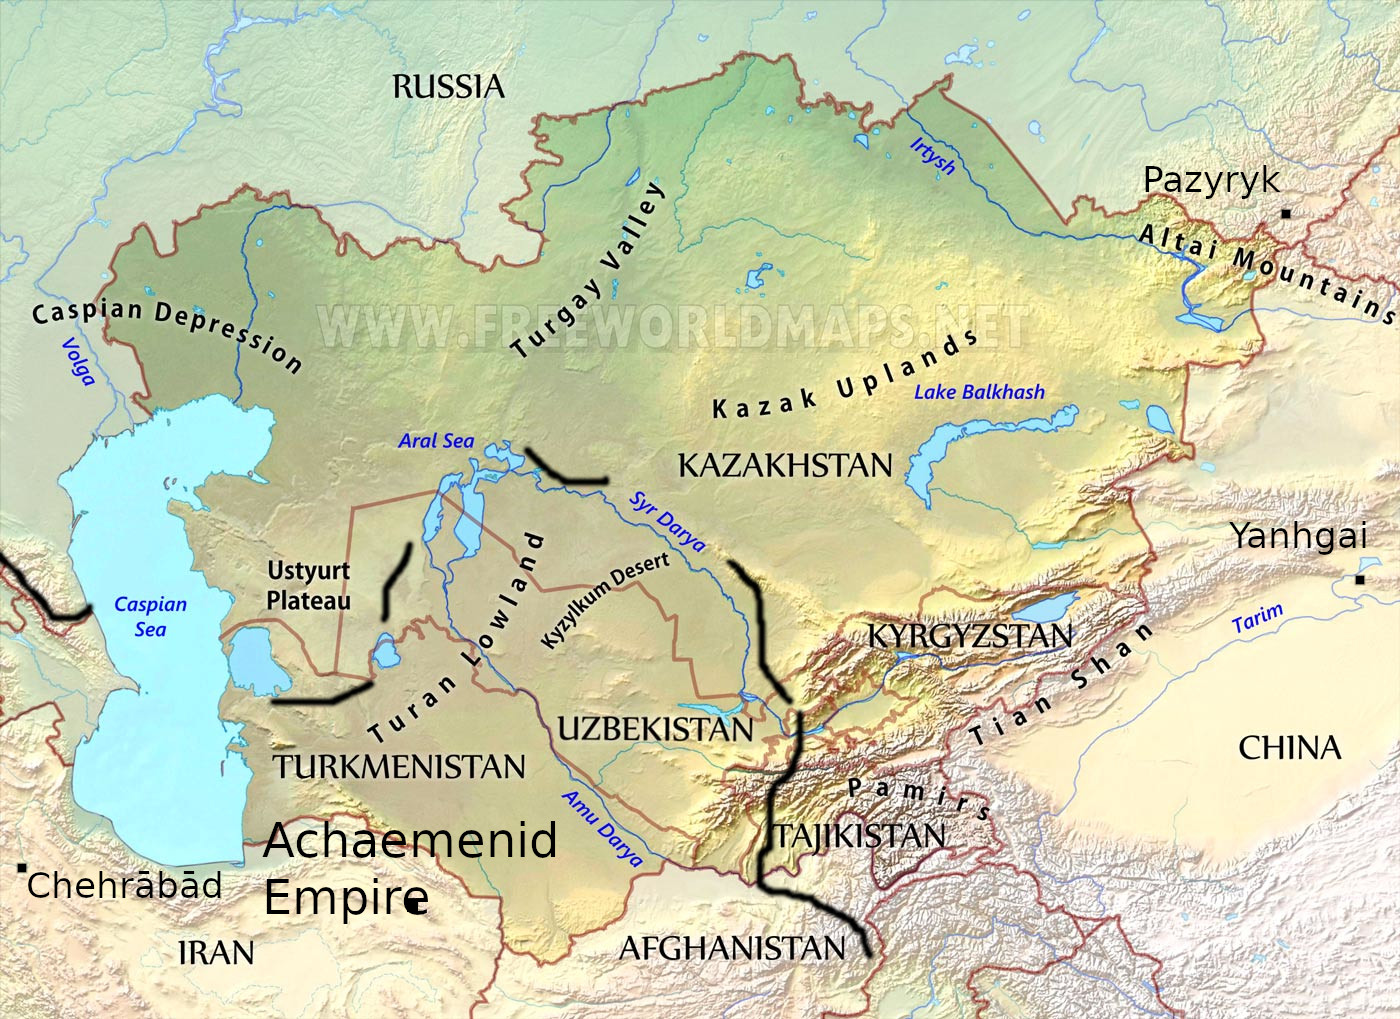 A topographical map of central Asia with modern borders and ancient sites